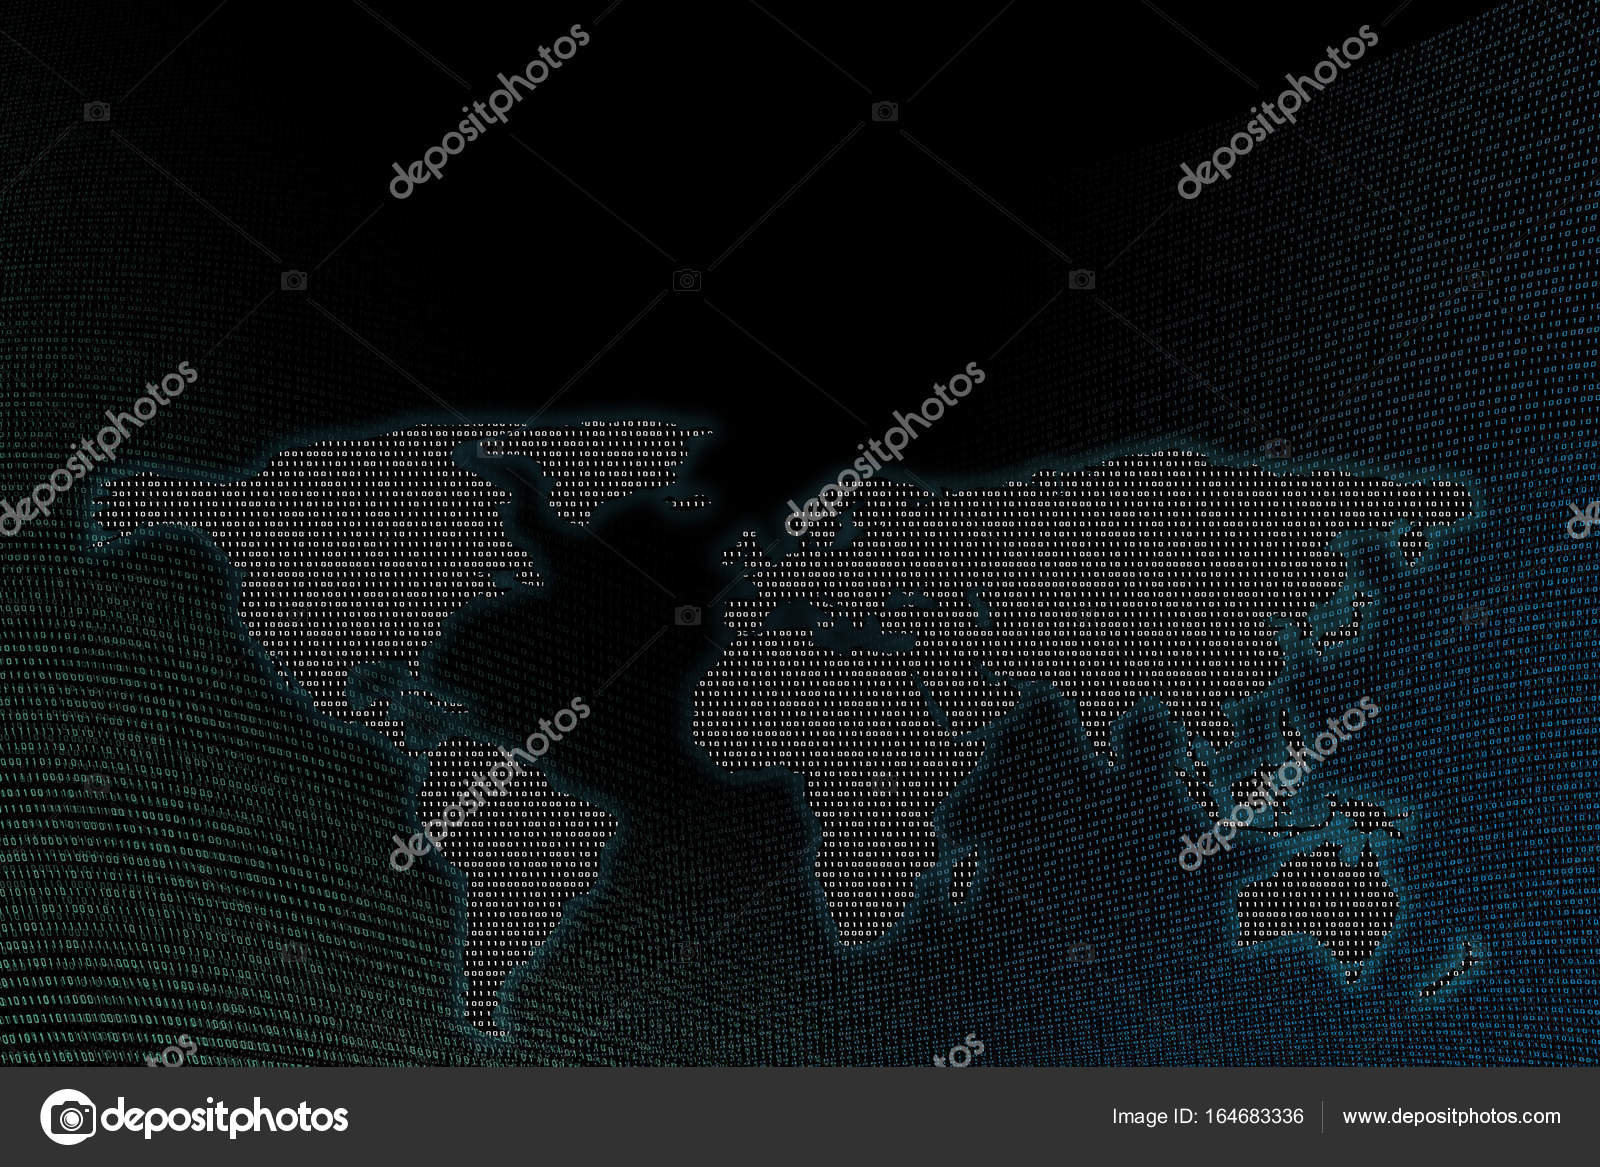 Digital world map binary numbers background copy space for network digital world map binary numbers background copy space for network connection concepts photo by suebsiri gumiabroncs Images